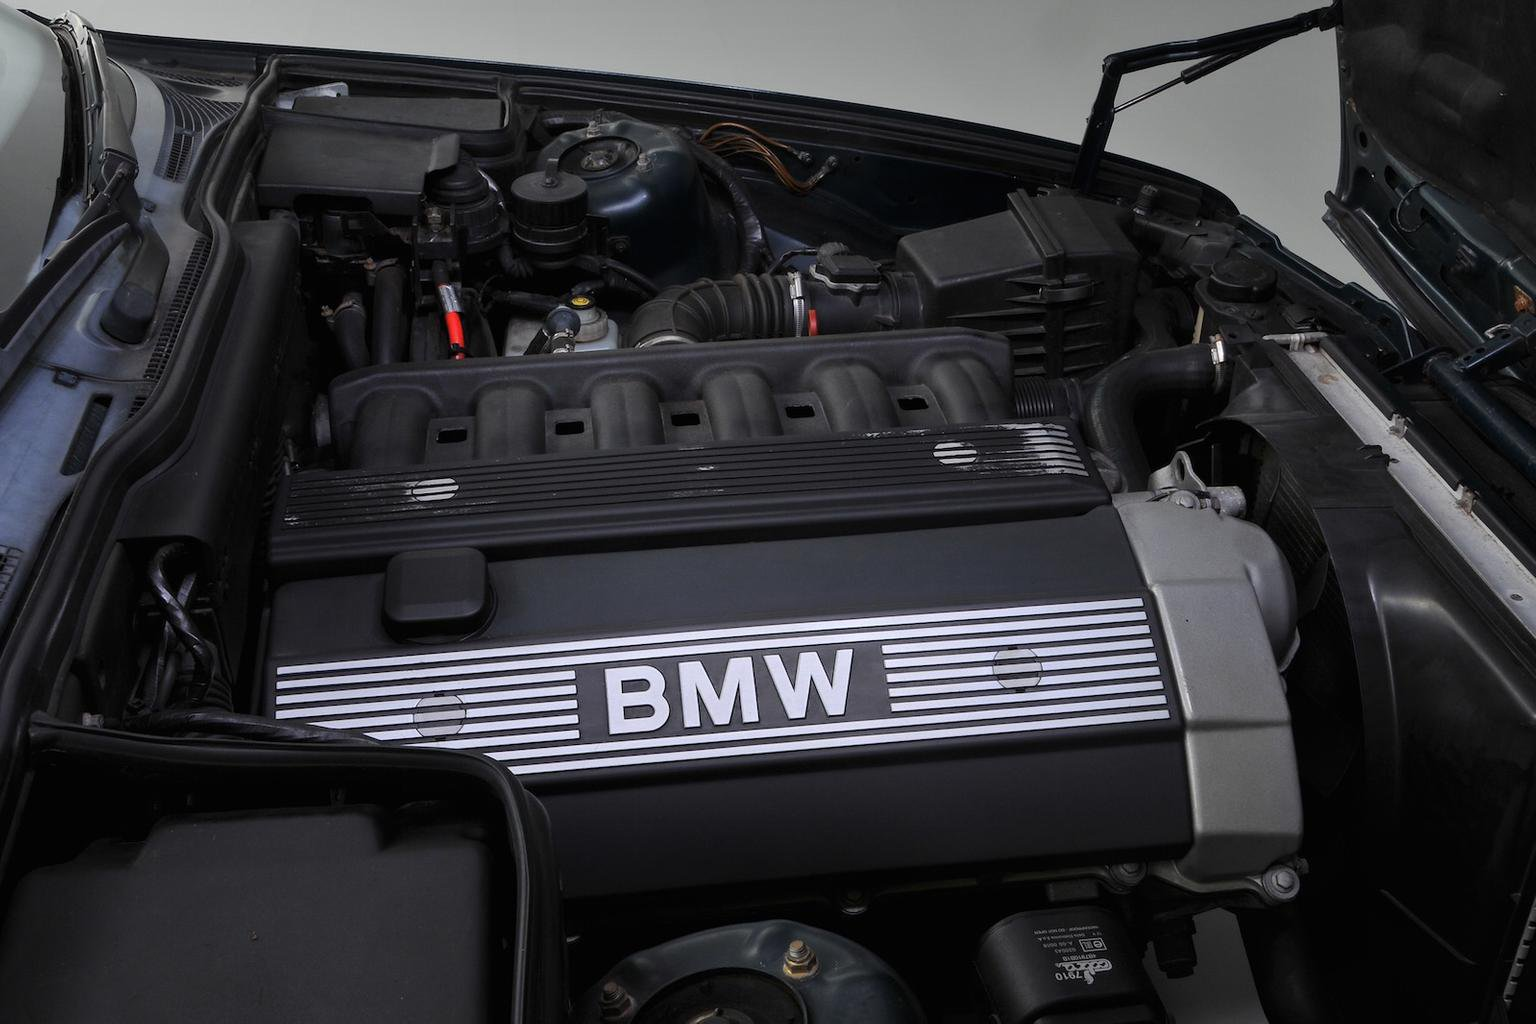 BMW 5 Series (E34) - Rewind Wednesday